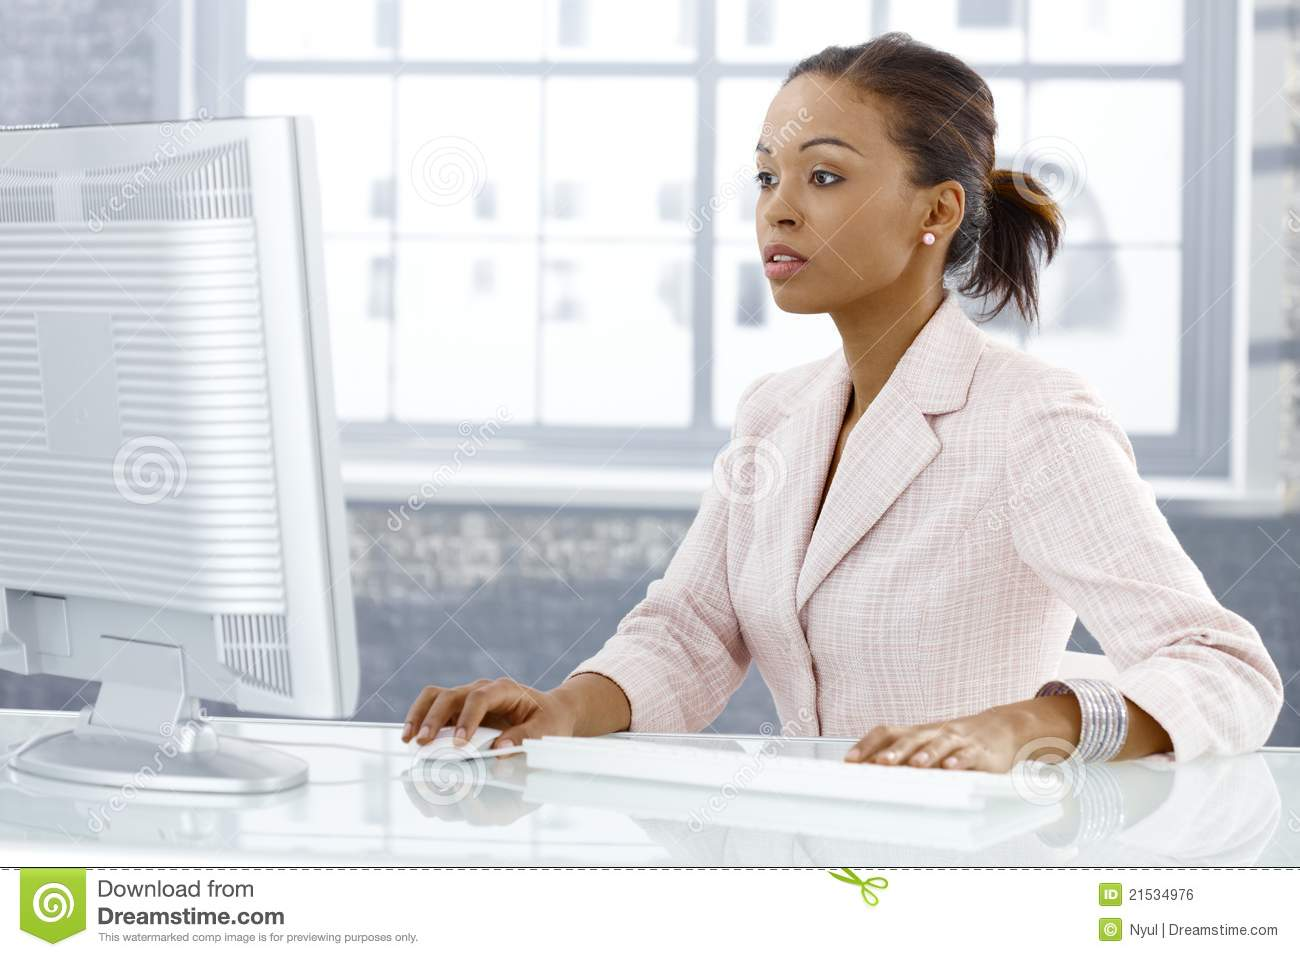 Businesswoman concentrating on work